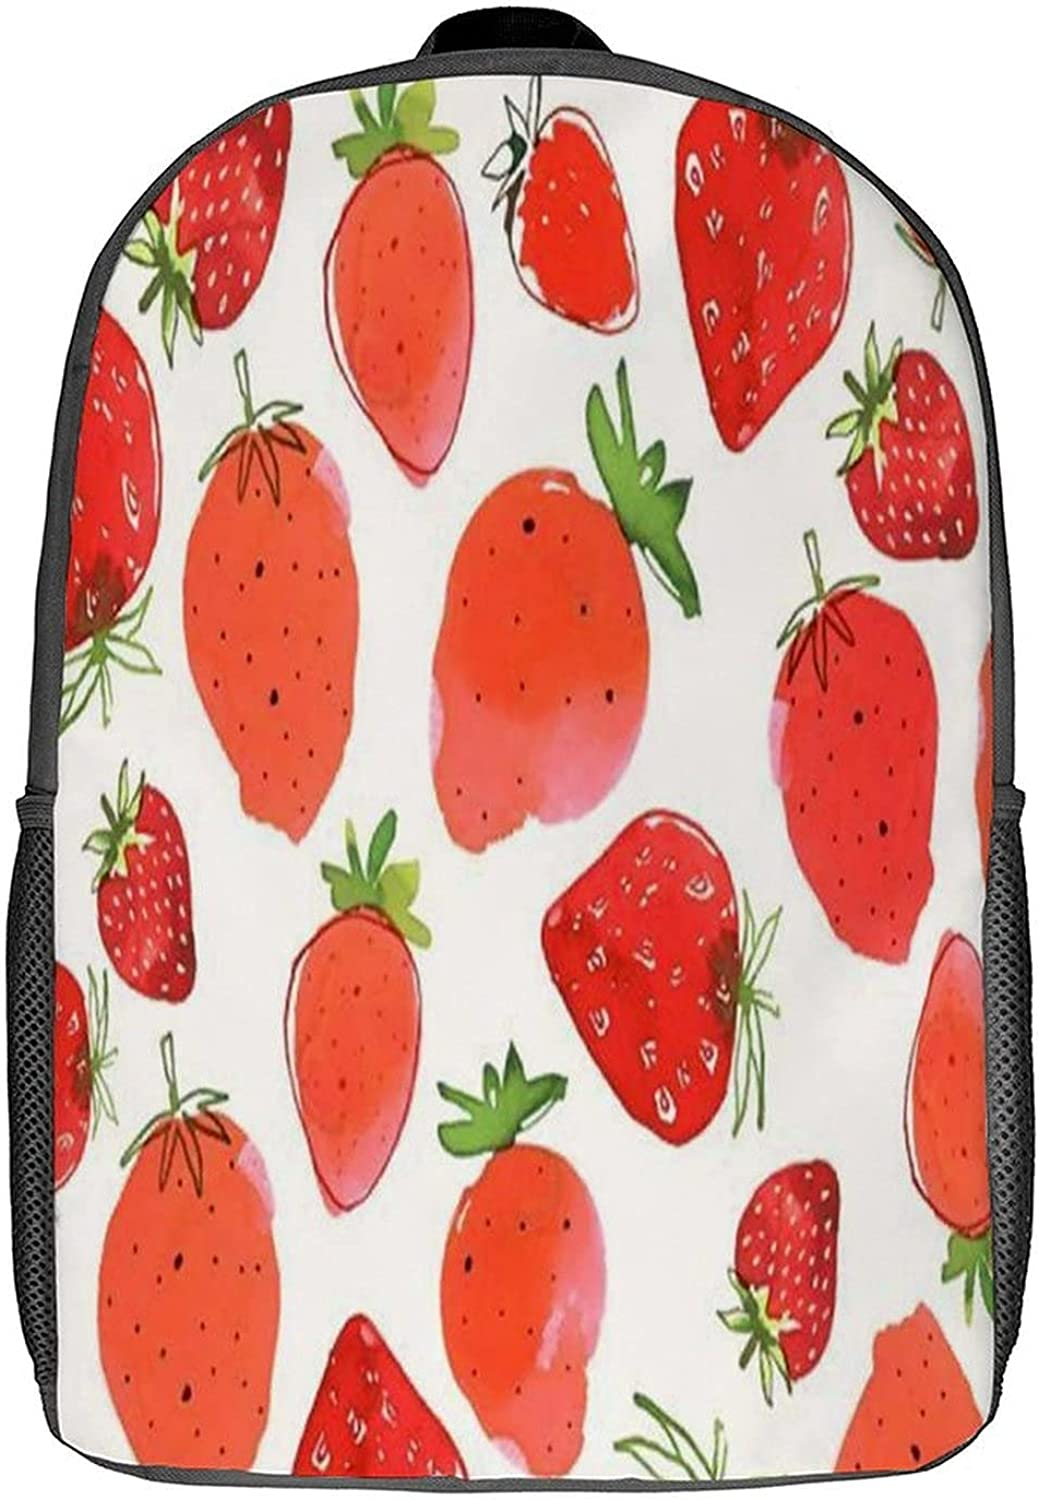 Backpack Fruit 2 Pattern Customed 17inch S Small Laptop half All stores are sold